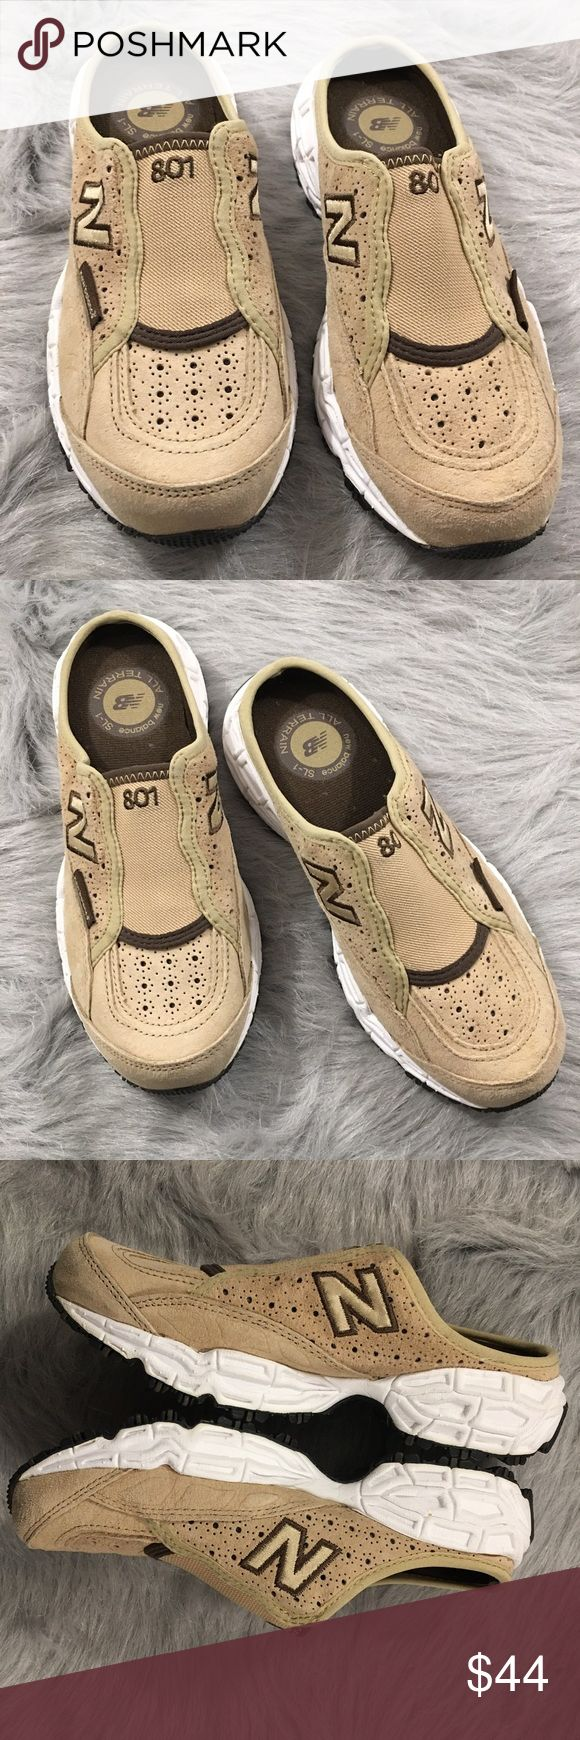 New Balance Tan Suede Slip On All Terrain Shoes Brand new, never worn New Balance slip on sneakers. Please see pics for more details (: New Balance Shoes